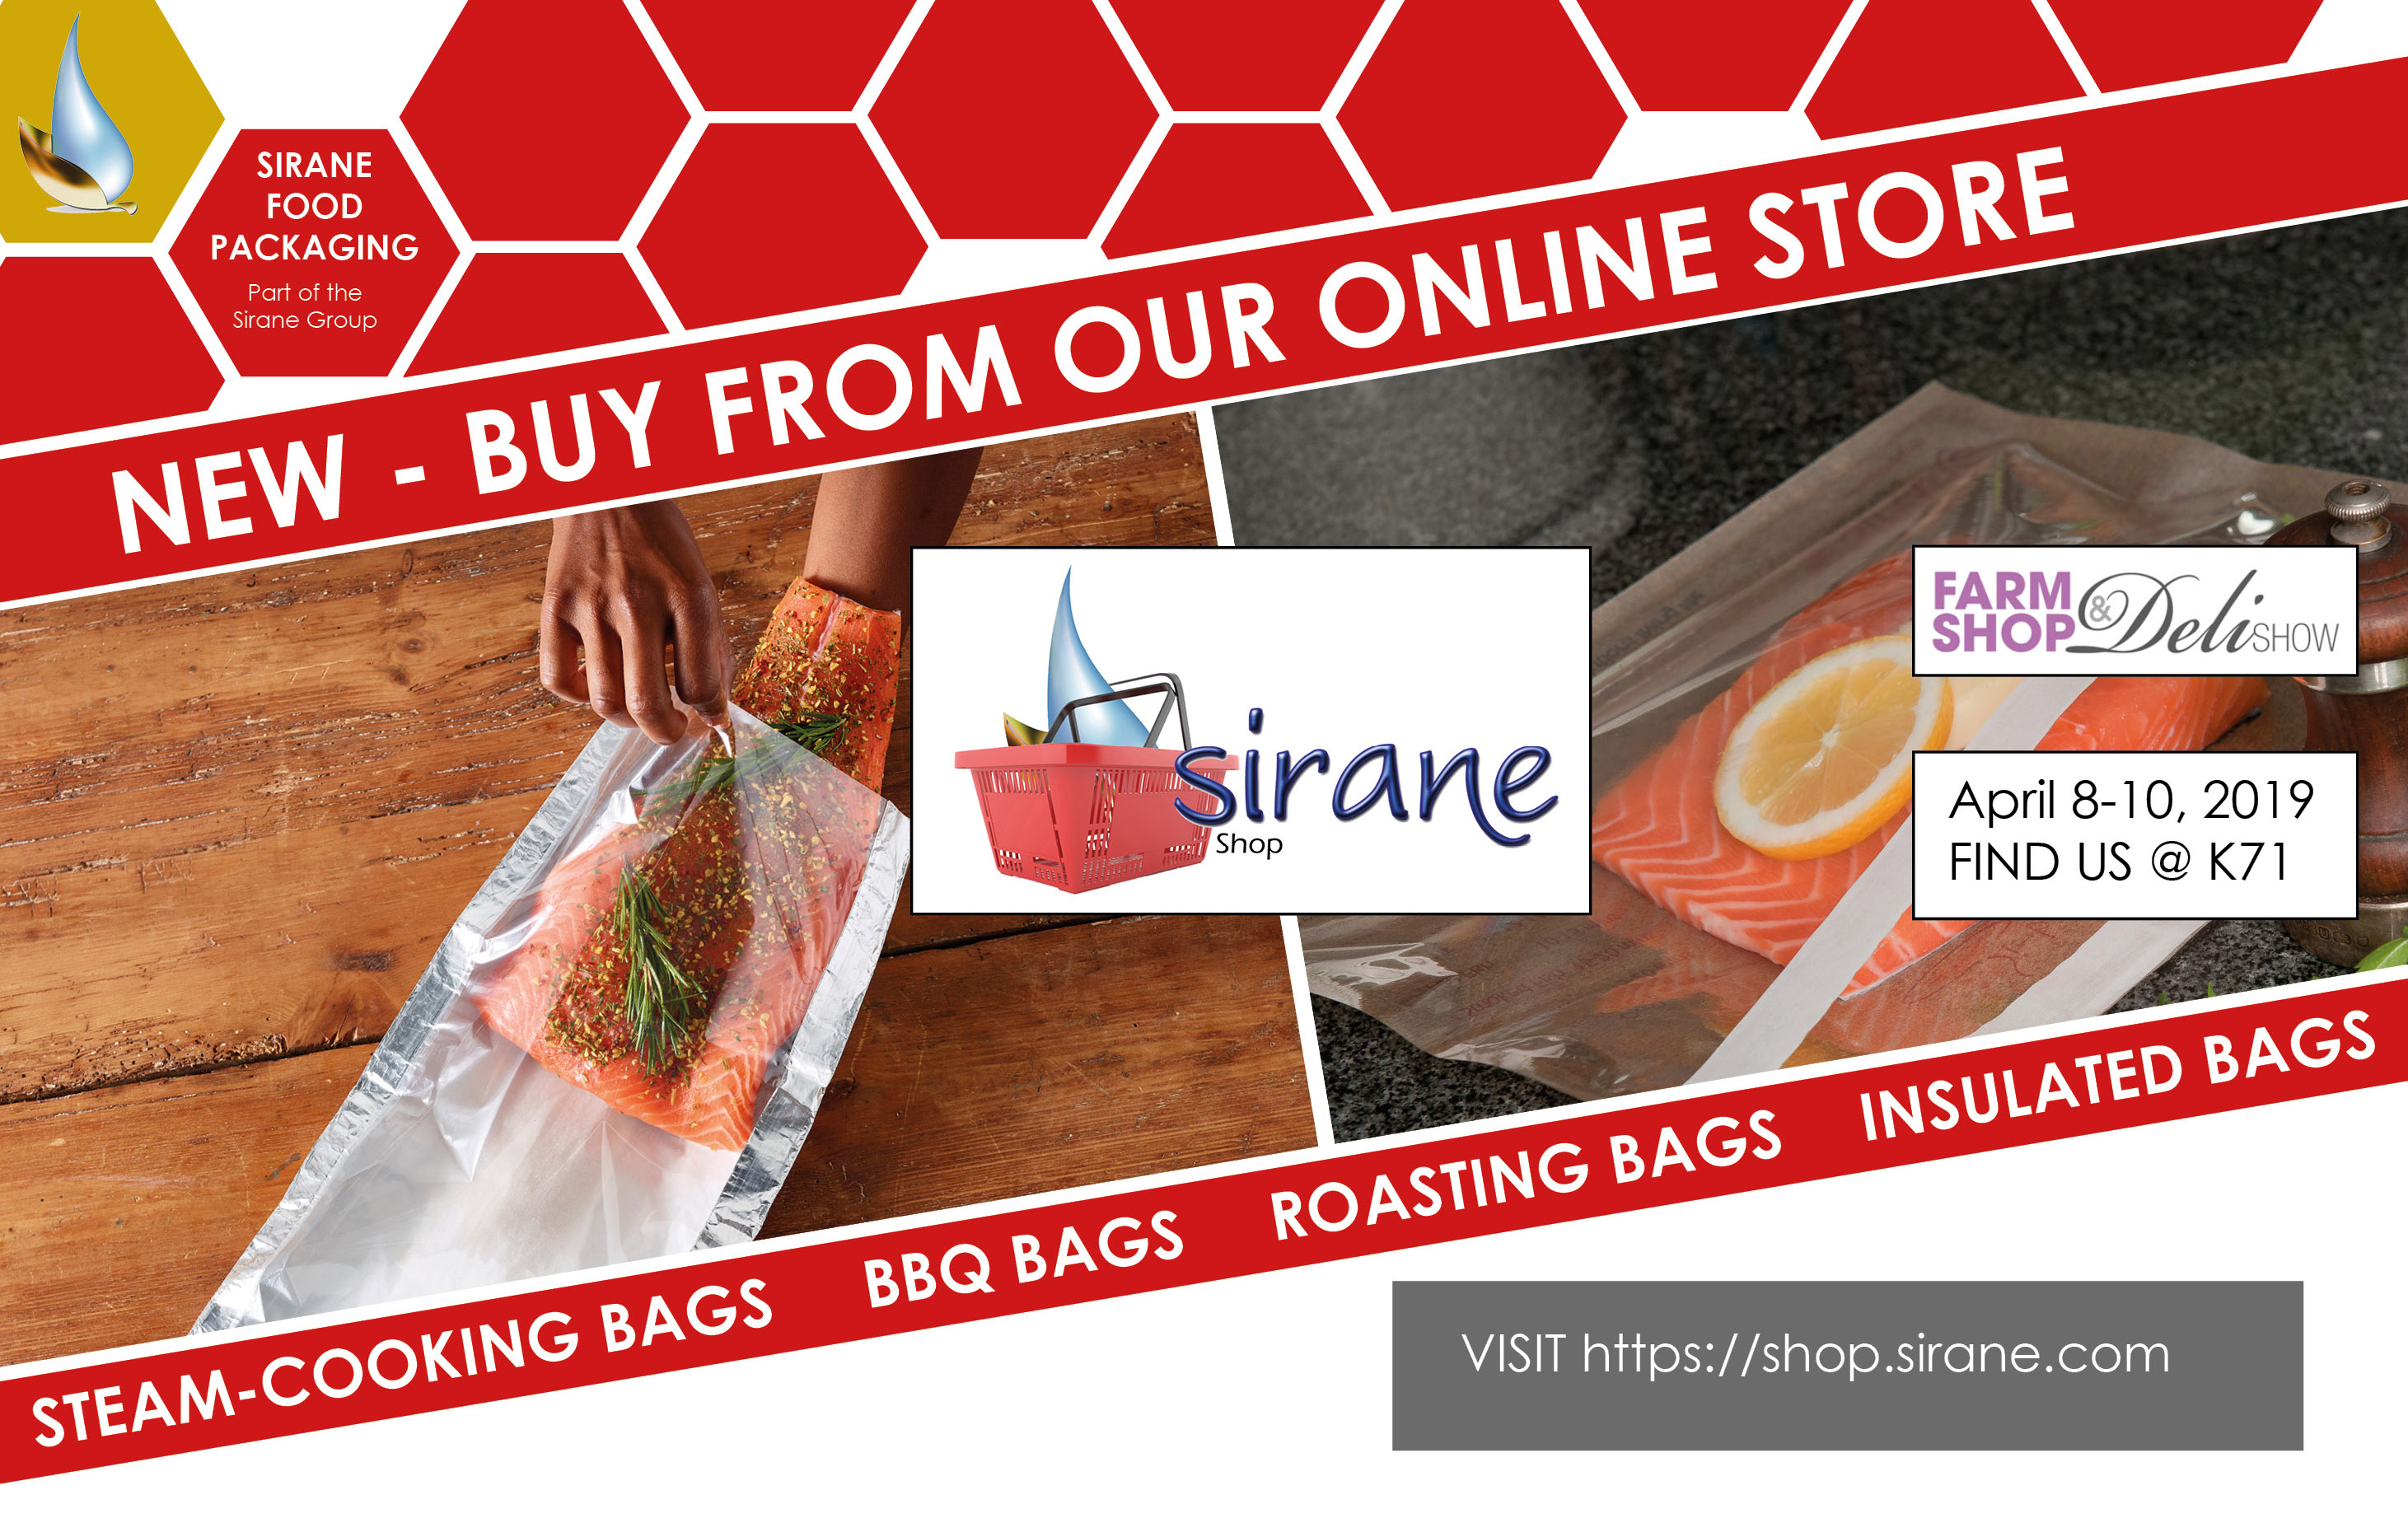 Sirane will be exhibiting at the Farm Shop & Deli Show 2019